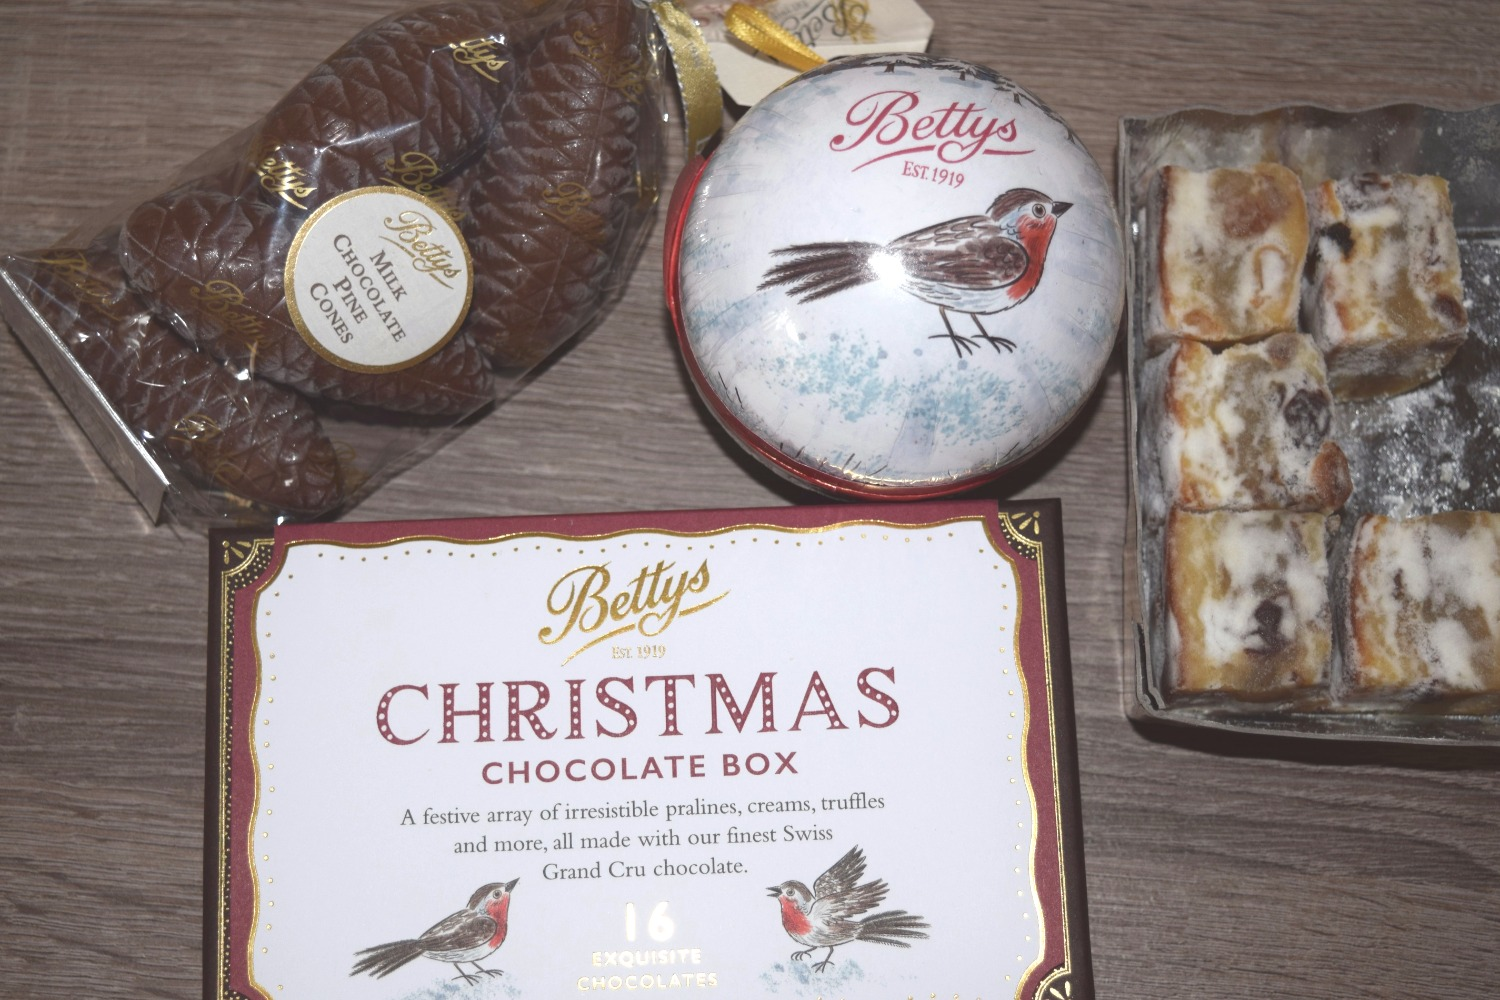 Selection of Betty's Christmas items - Foodies gift guide